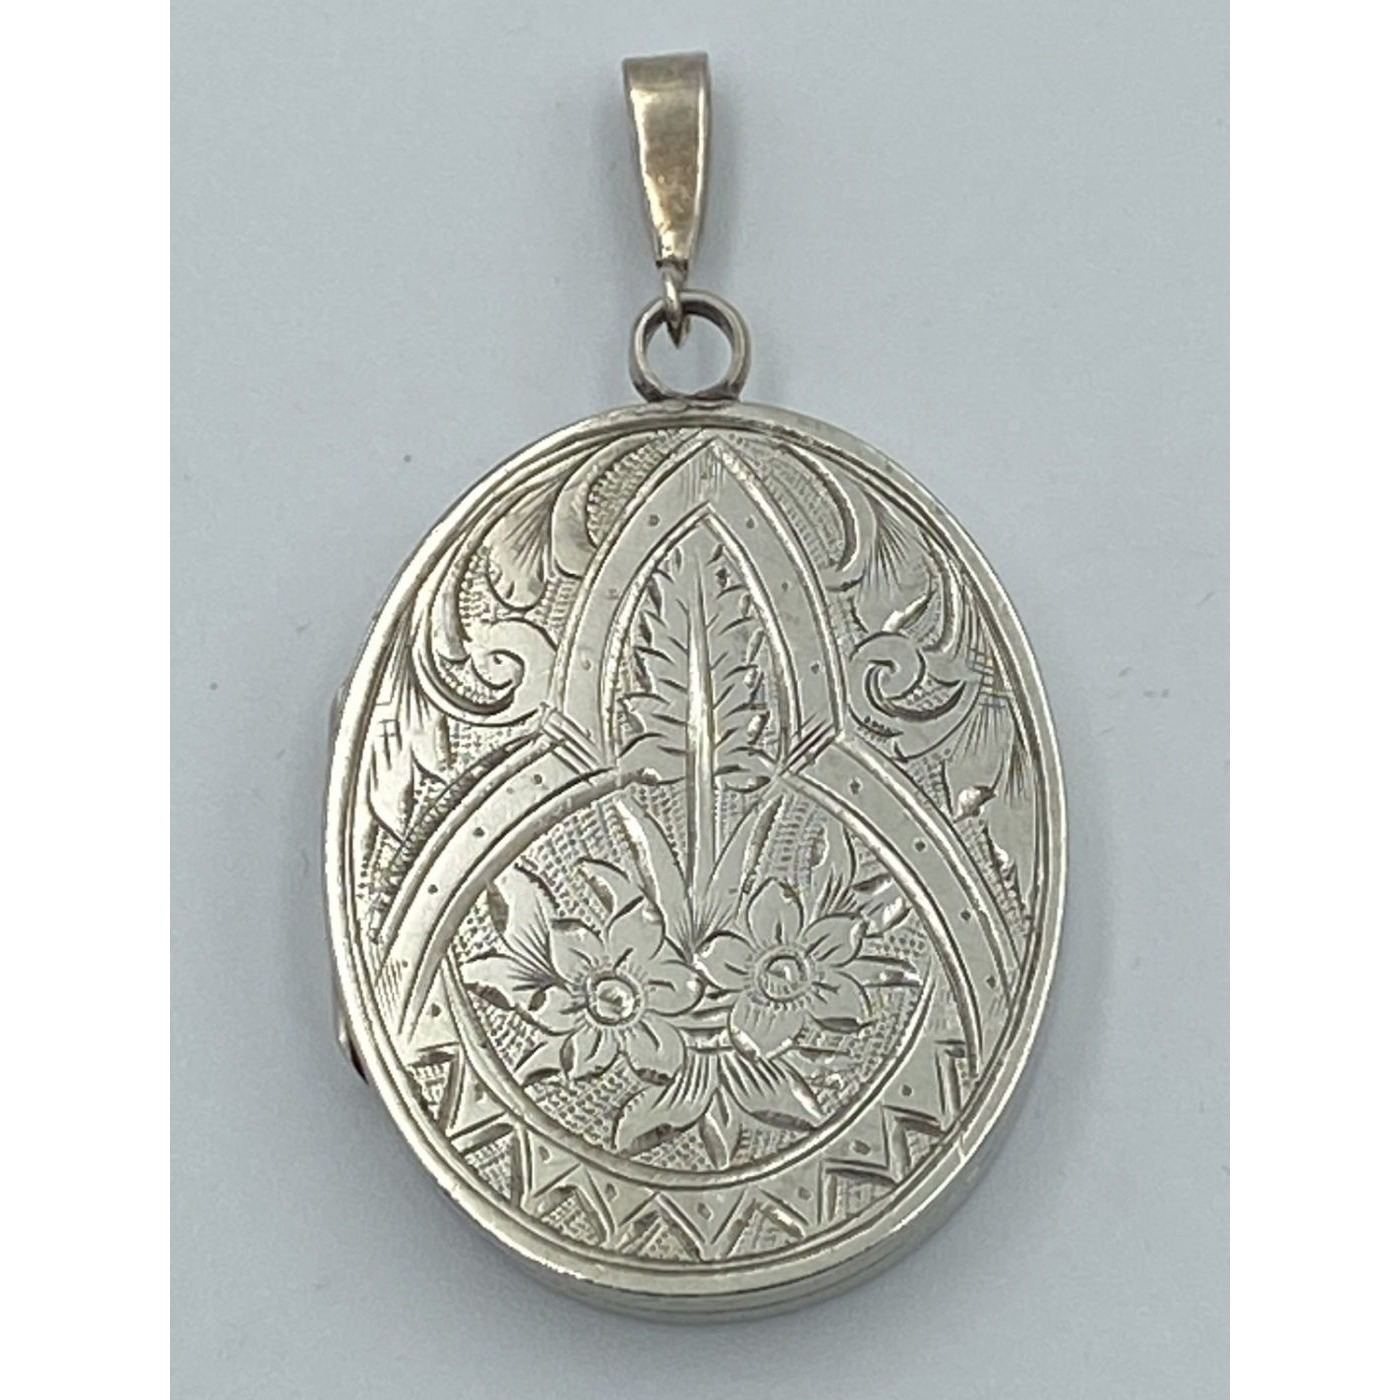 Outstanding Large Flat Floral, Leaf, Swirl Antique Silver English Locket